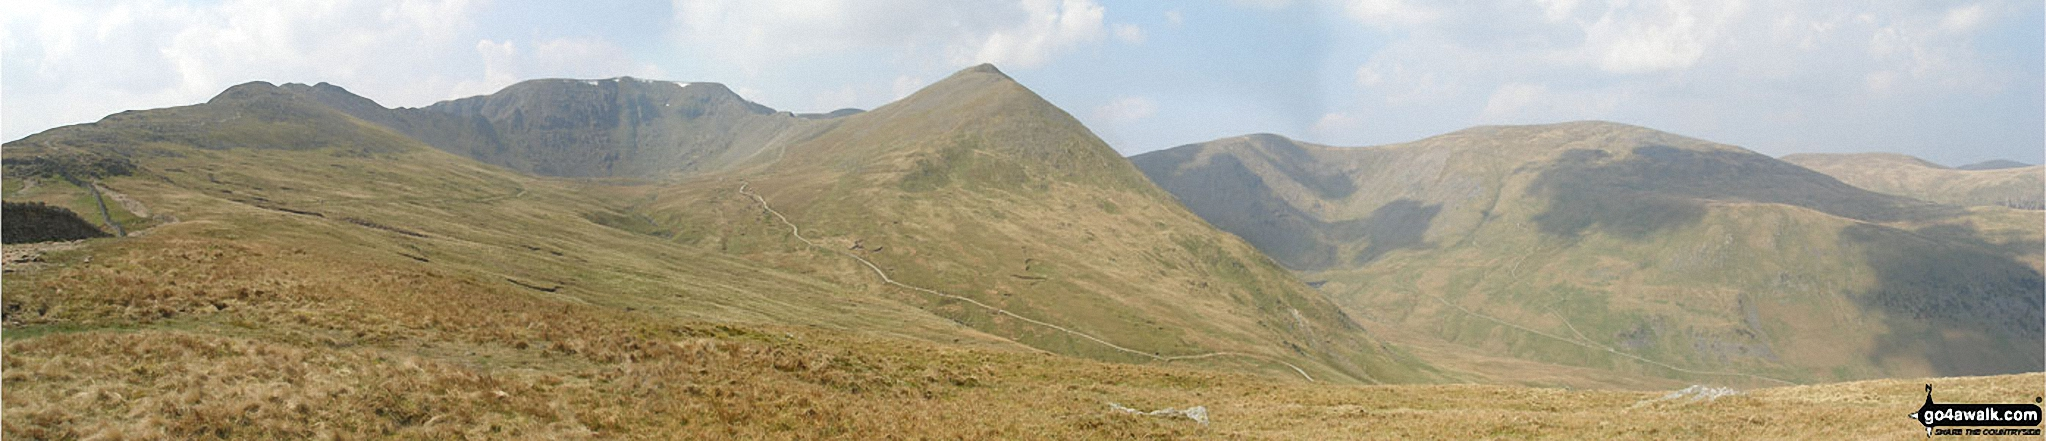 Striding Edge, Helvellyn, Swirral Edge and Catstye Cam from Hole-in-the-Wall